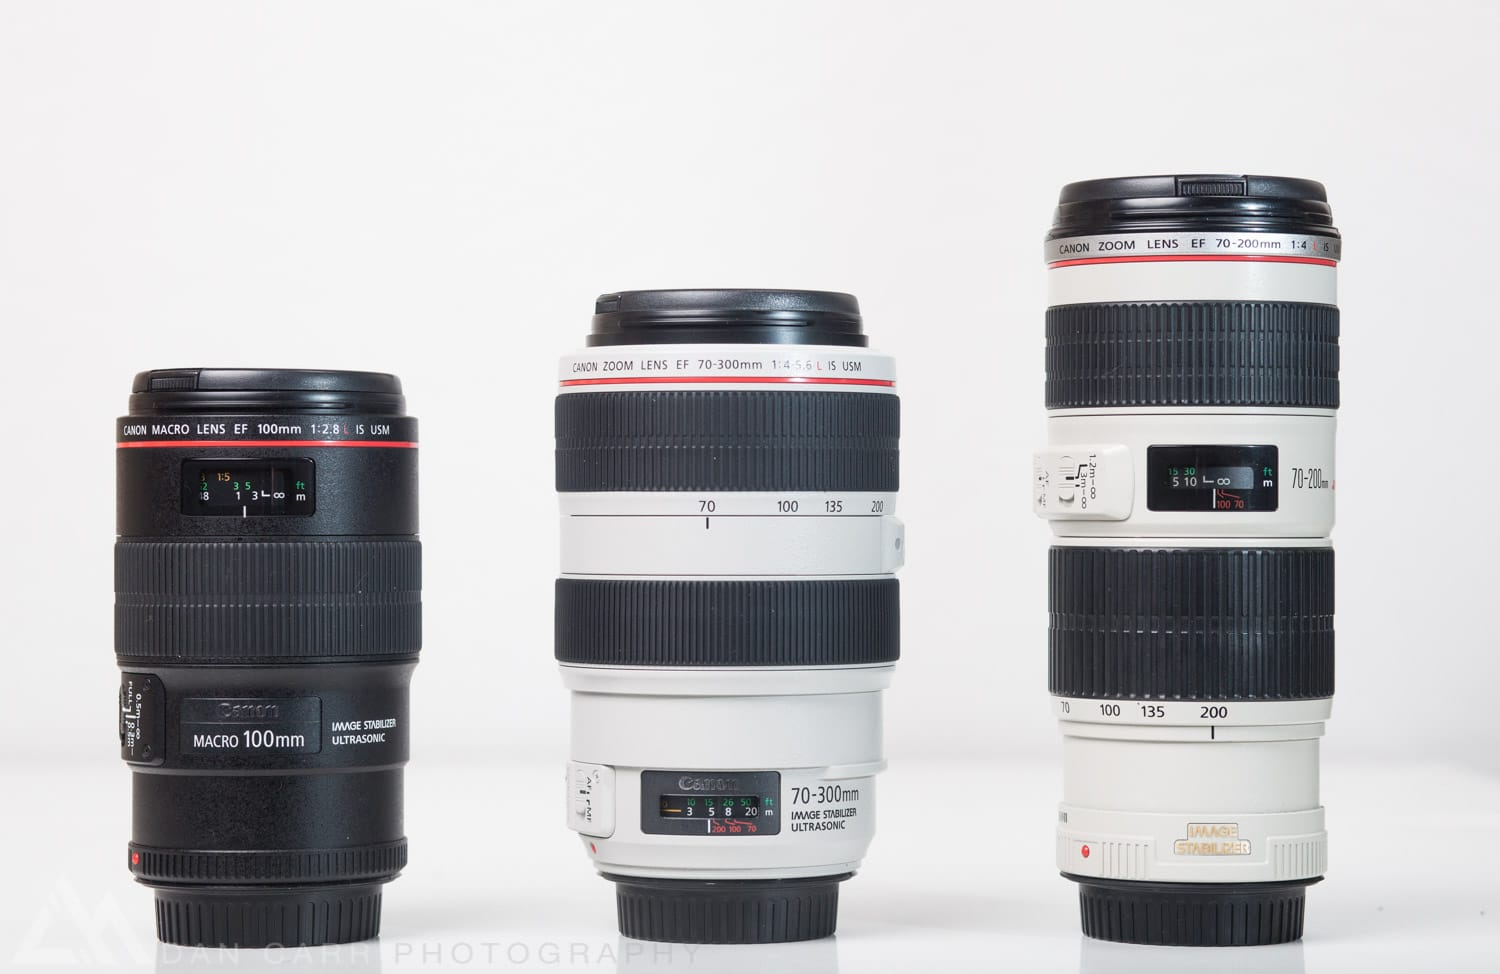 On the right is the 70-200 f/4 that we saw in the previous image. In the middle we've got the 70-300 f/4-5.6.